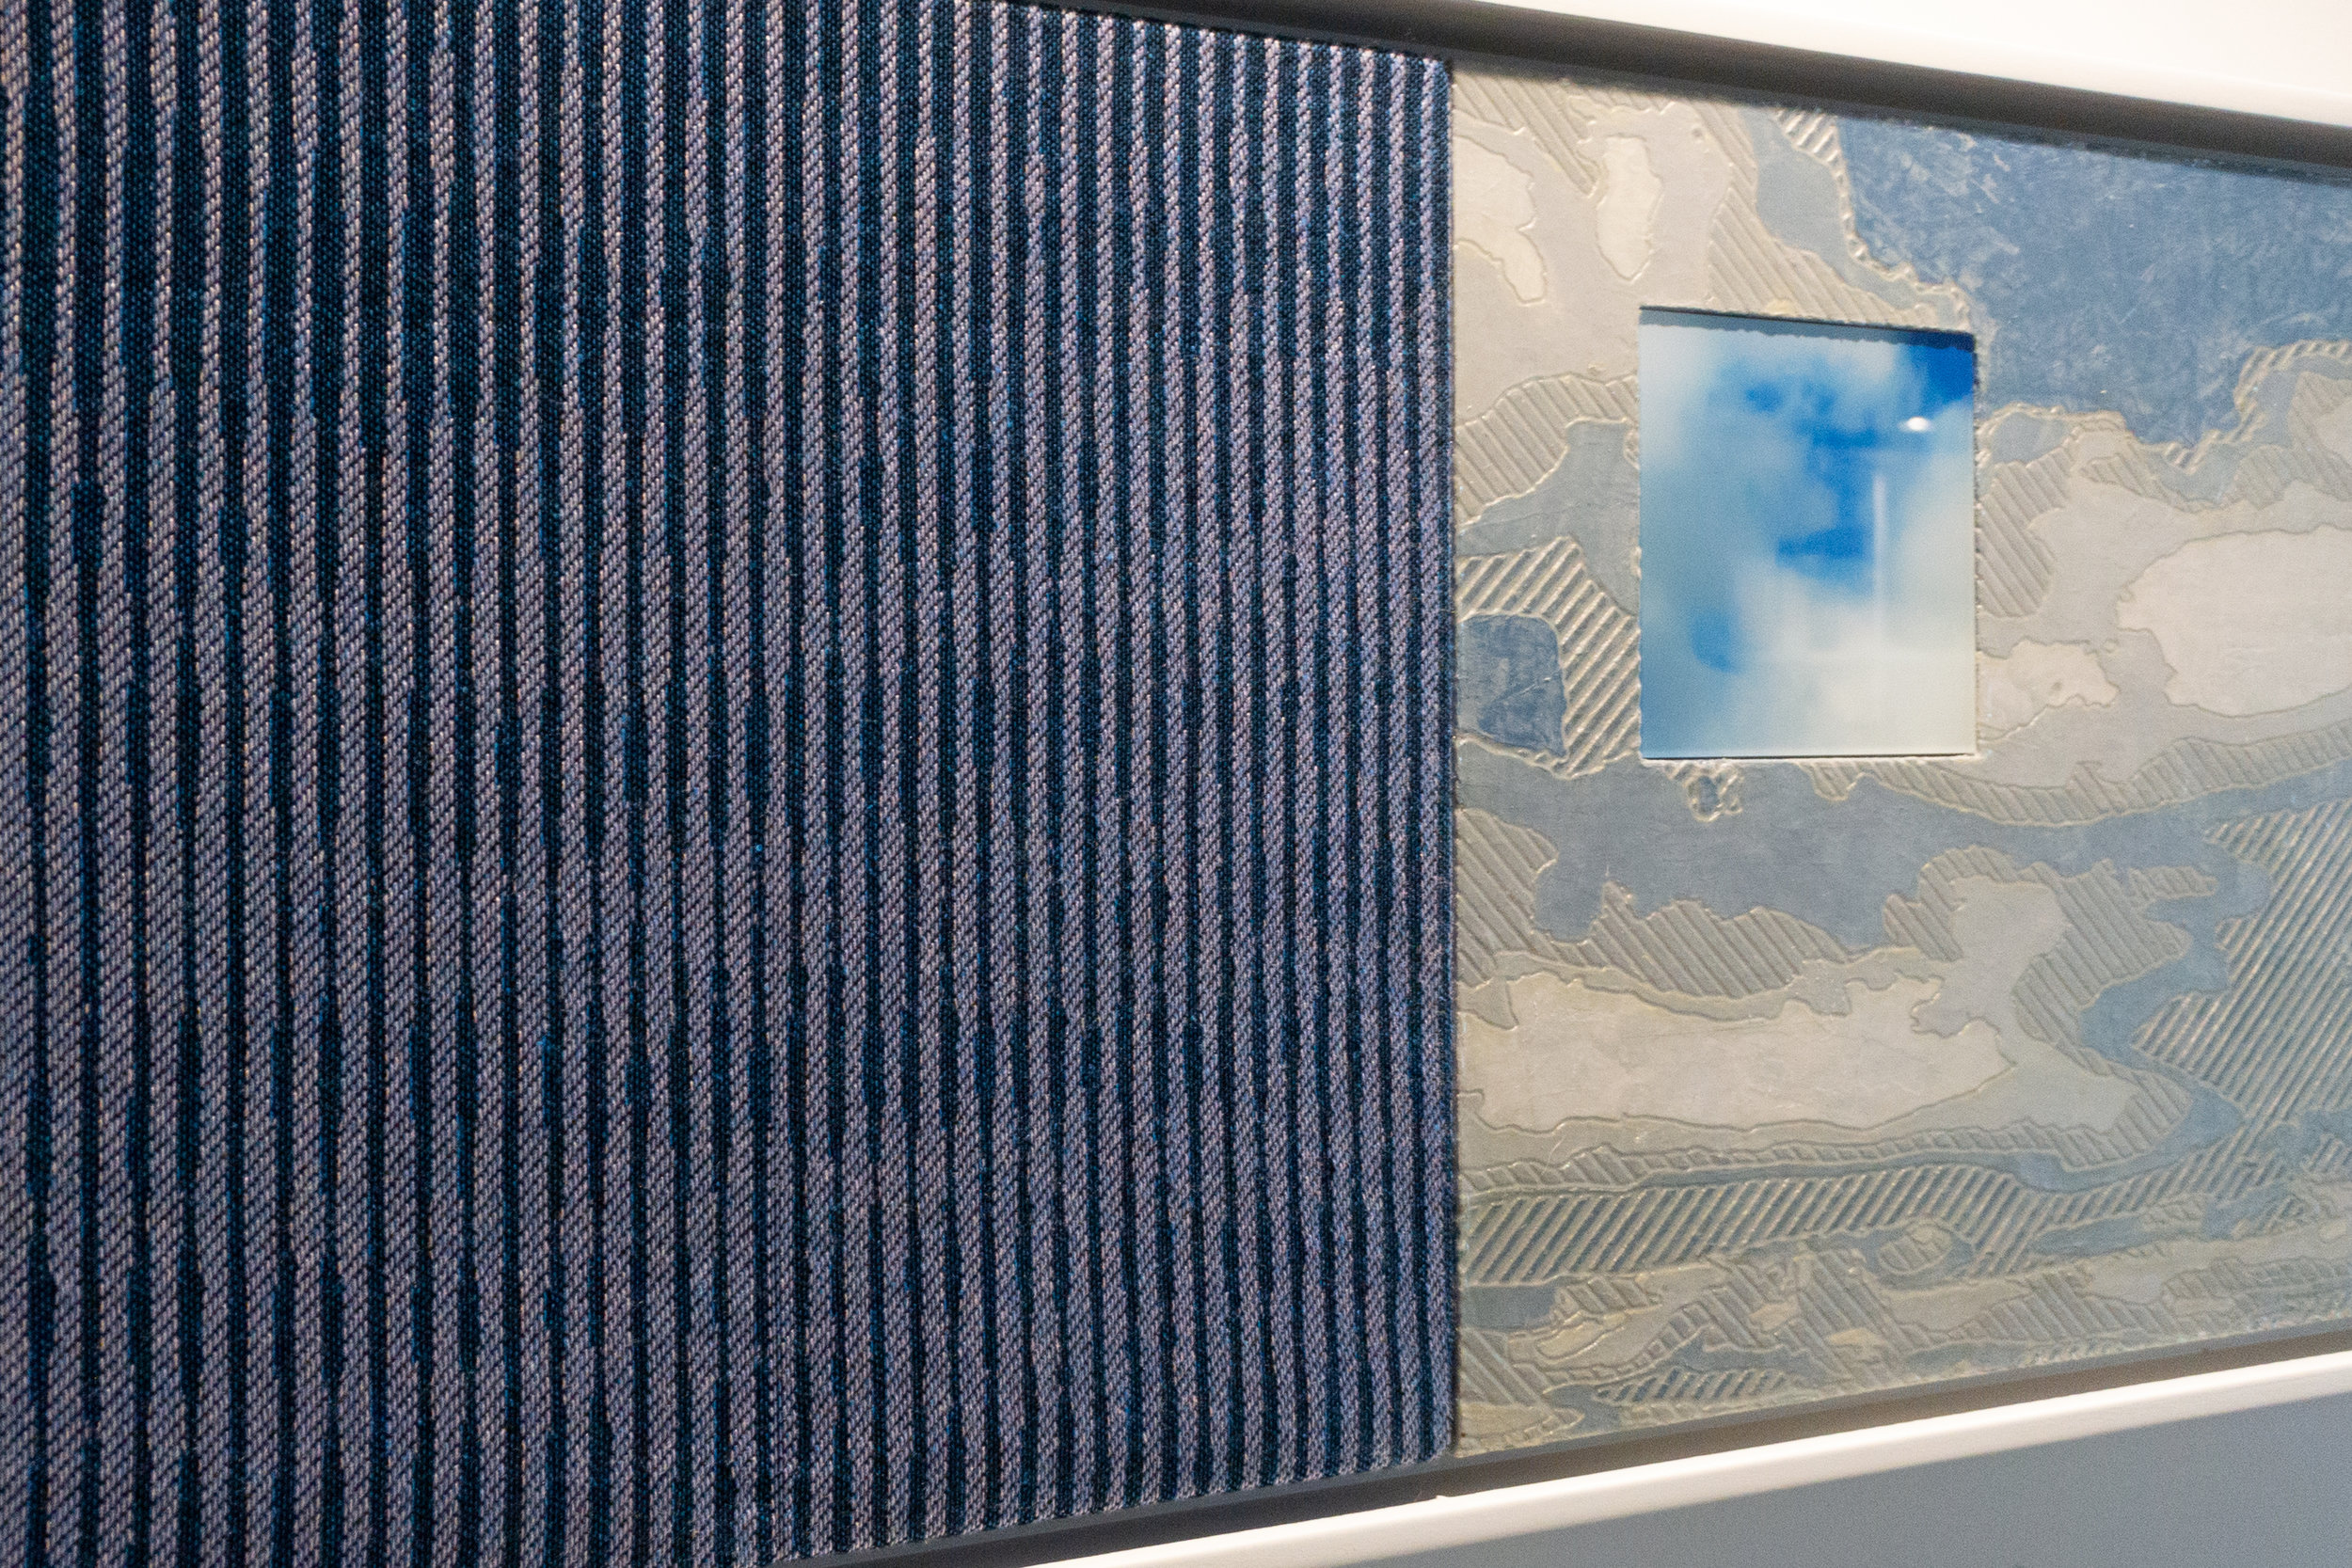 From Sky to Sky   Detail. Jacquard tapestry, painted wood relief and digital prints